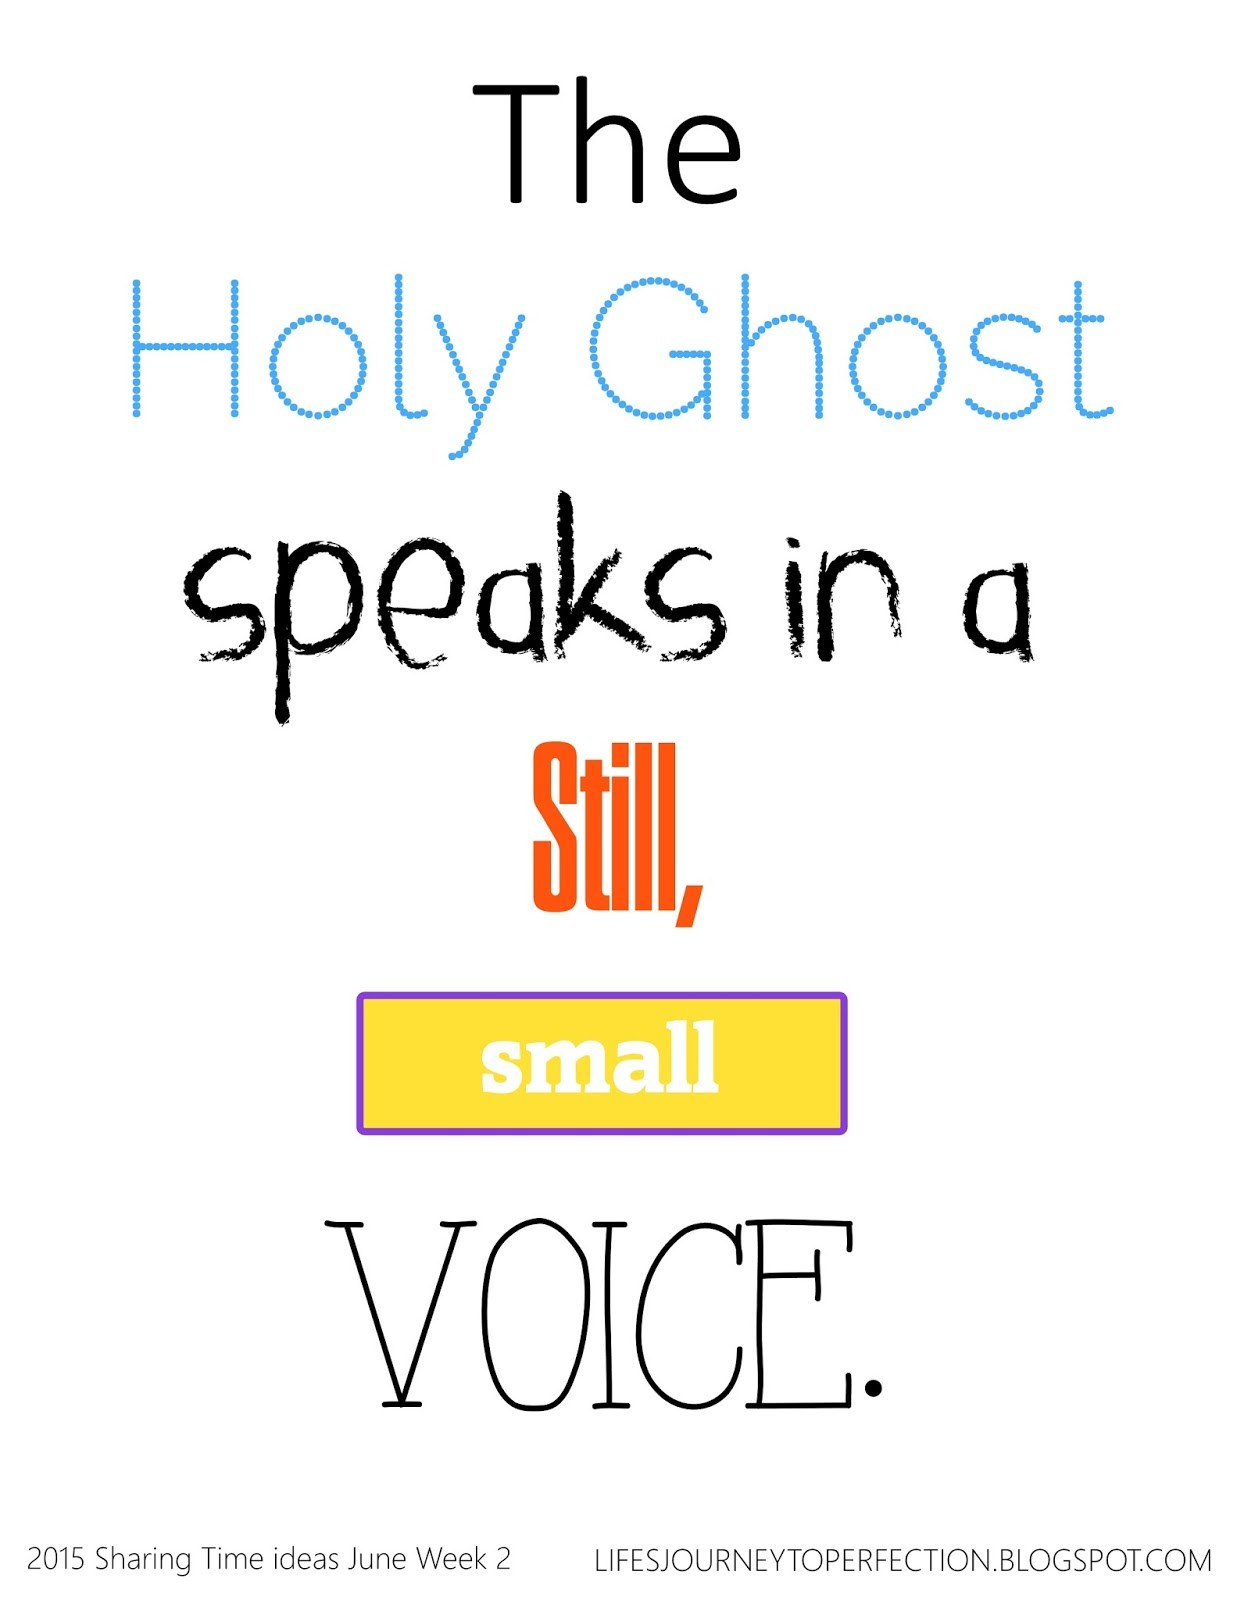 Holy ghost lds clipart 2 » Clipart Portal.